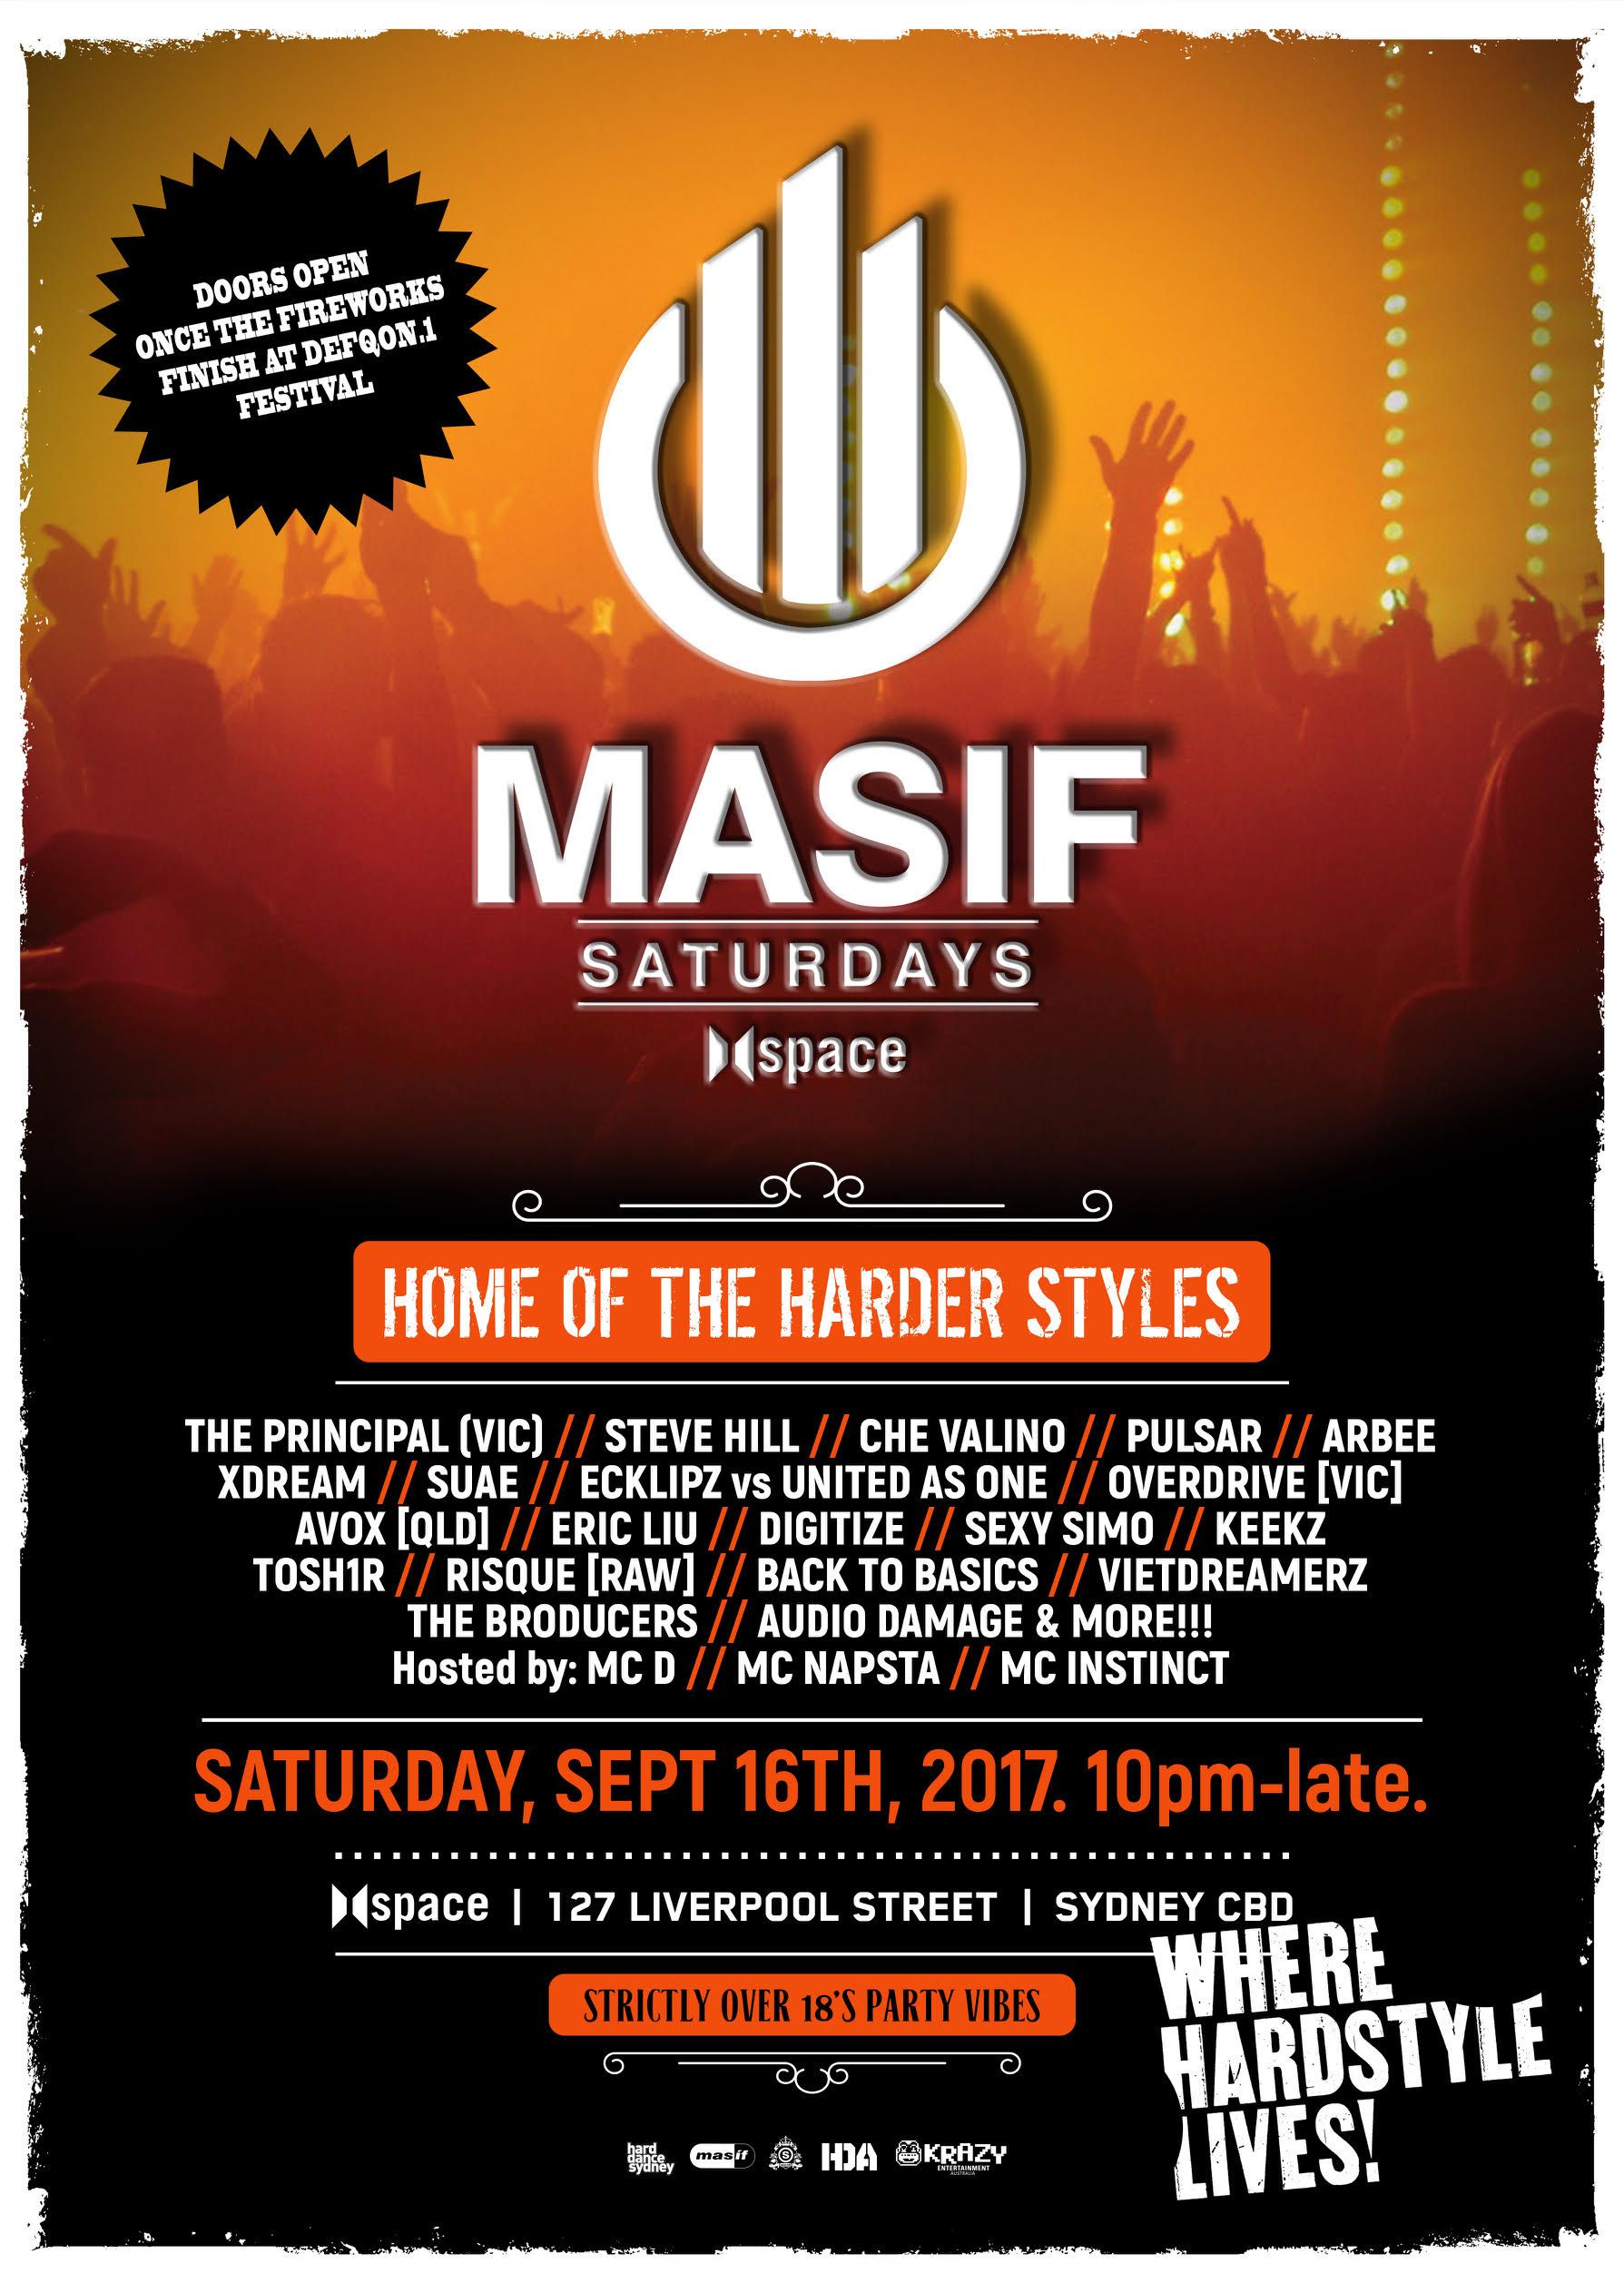 MASIF SATURDAYS - HOME OF THE HARDER STYLES